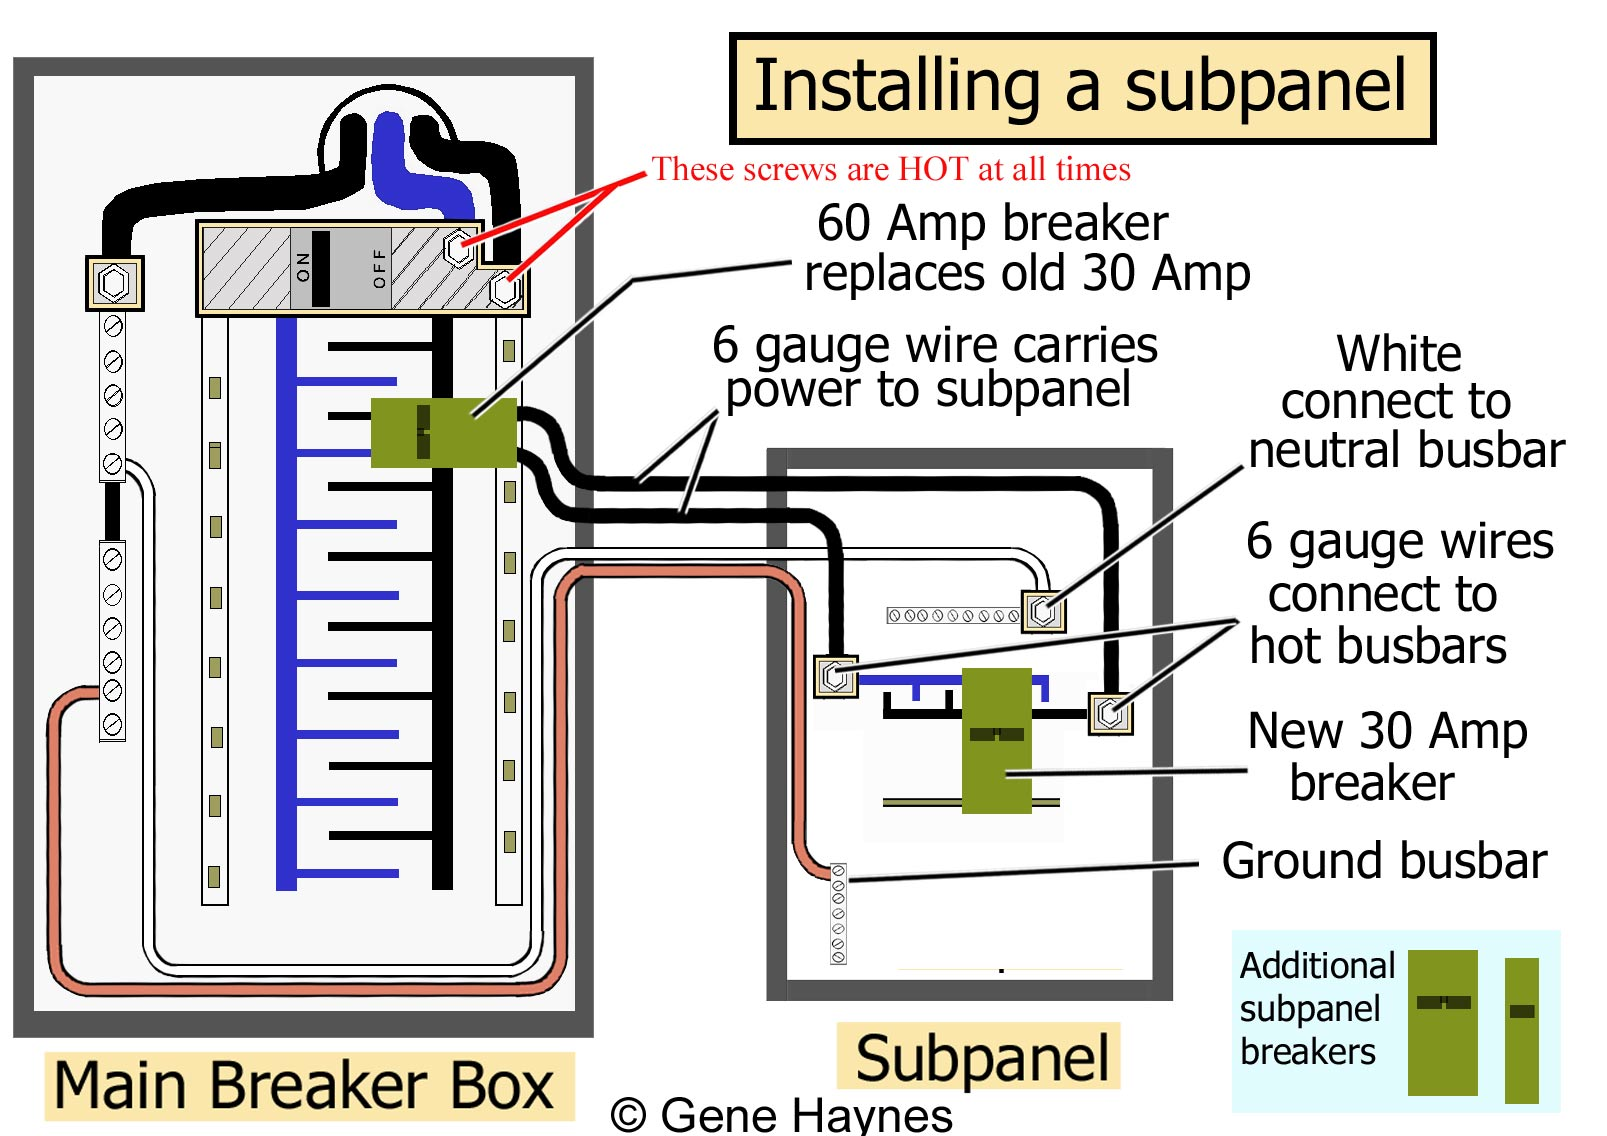 How to install a subpanel how to install main lug see larger 60 amp subpanel with 240volt and 120volt use with both 240volt and 120volt breakers 1 60 150 amp breaker replaces any 240 breaker in main box keyboard keysfo Choice Image